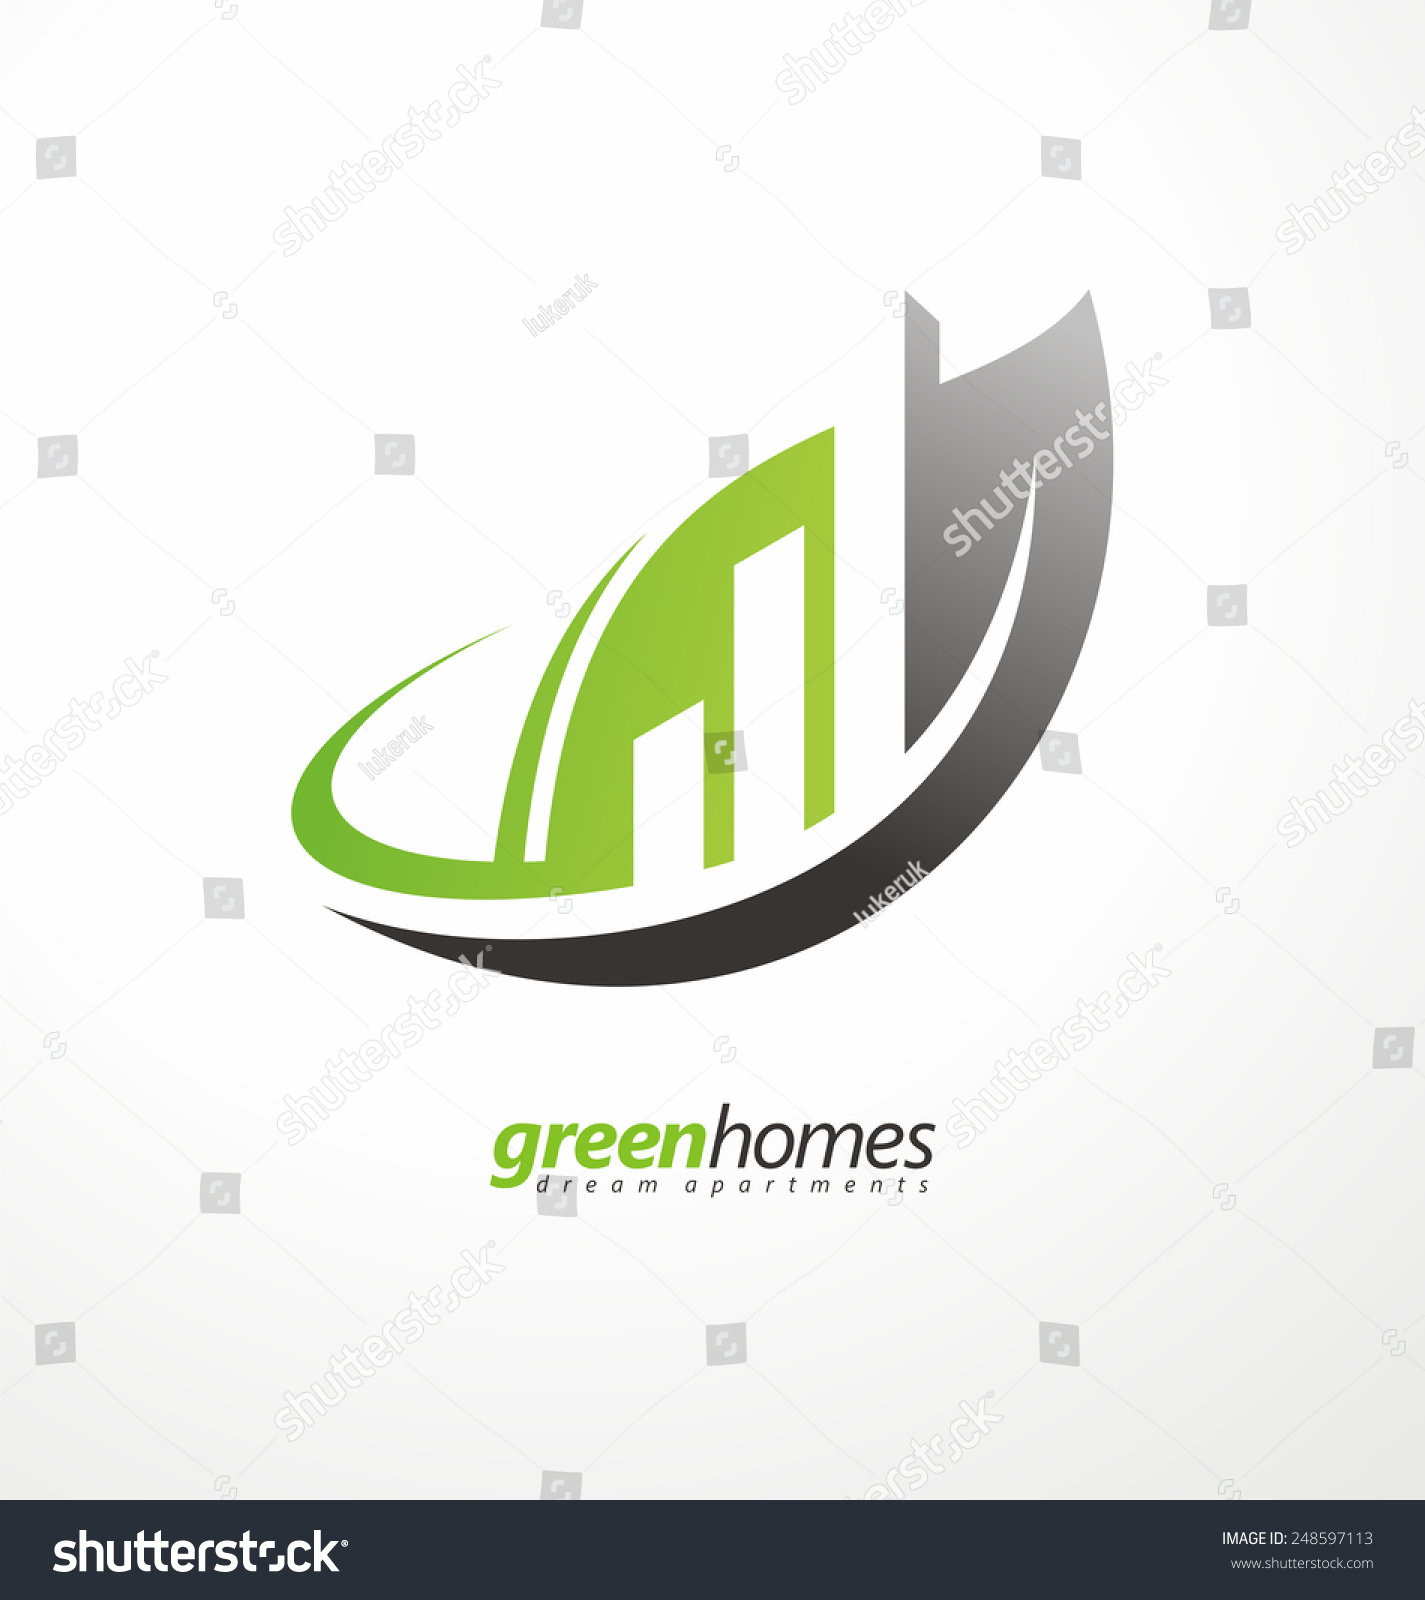 Green Homes Creative Symbol Layout Dream Stock Vector HD (Royalty ...